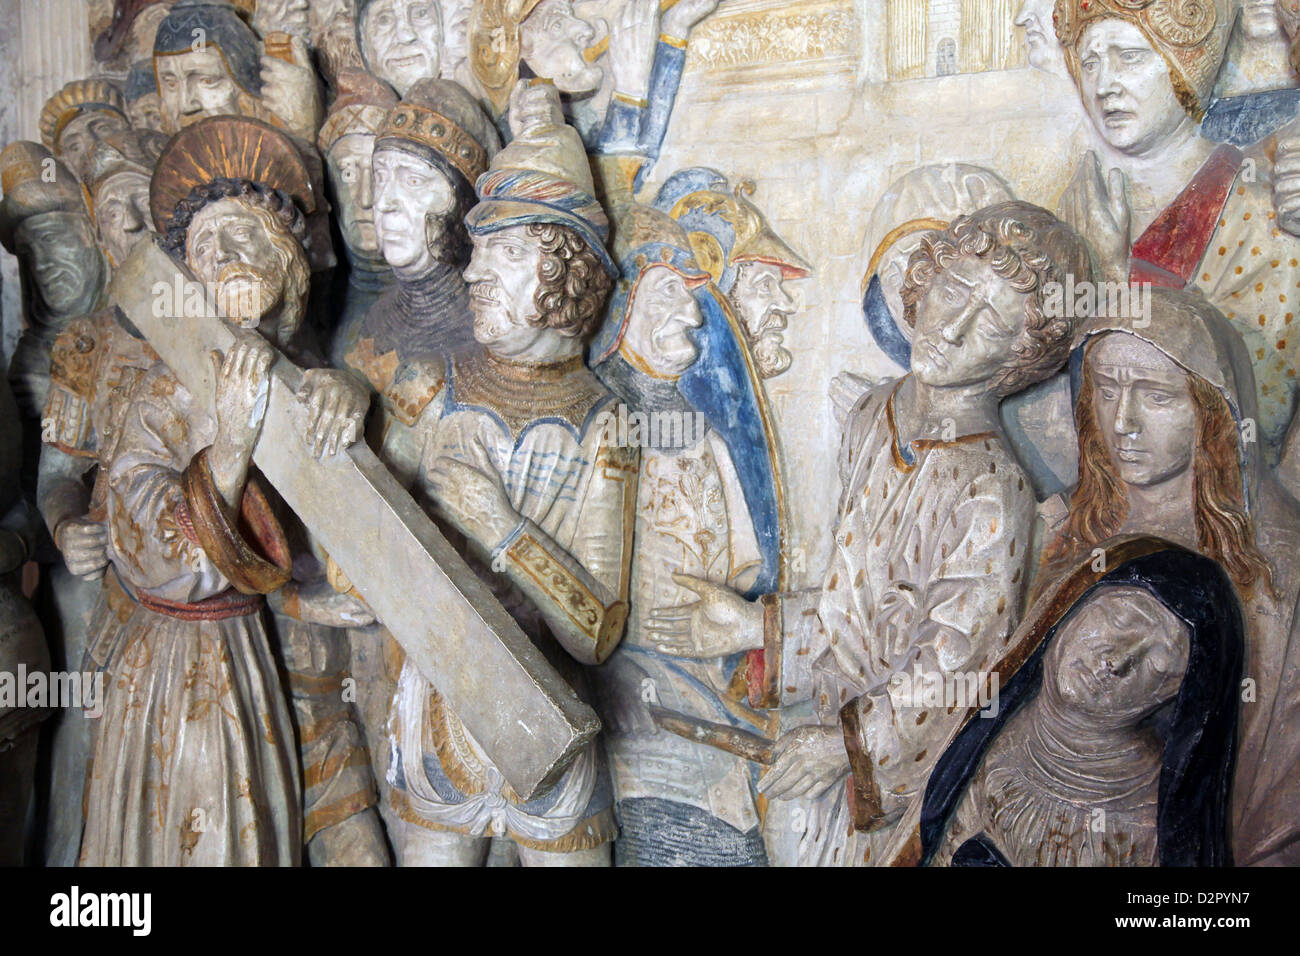 Plaster relief of Christ carrying the cross, Palais des Papes, Avignon, Rhone Valley, Provence, France - Stock Image